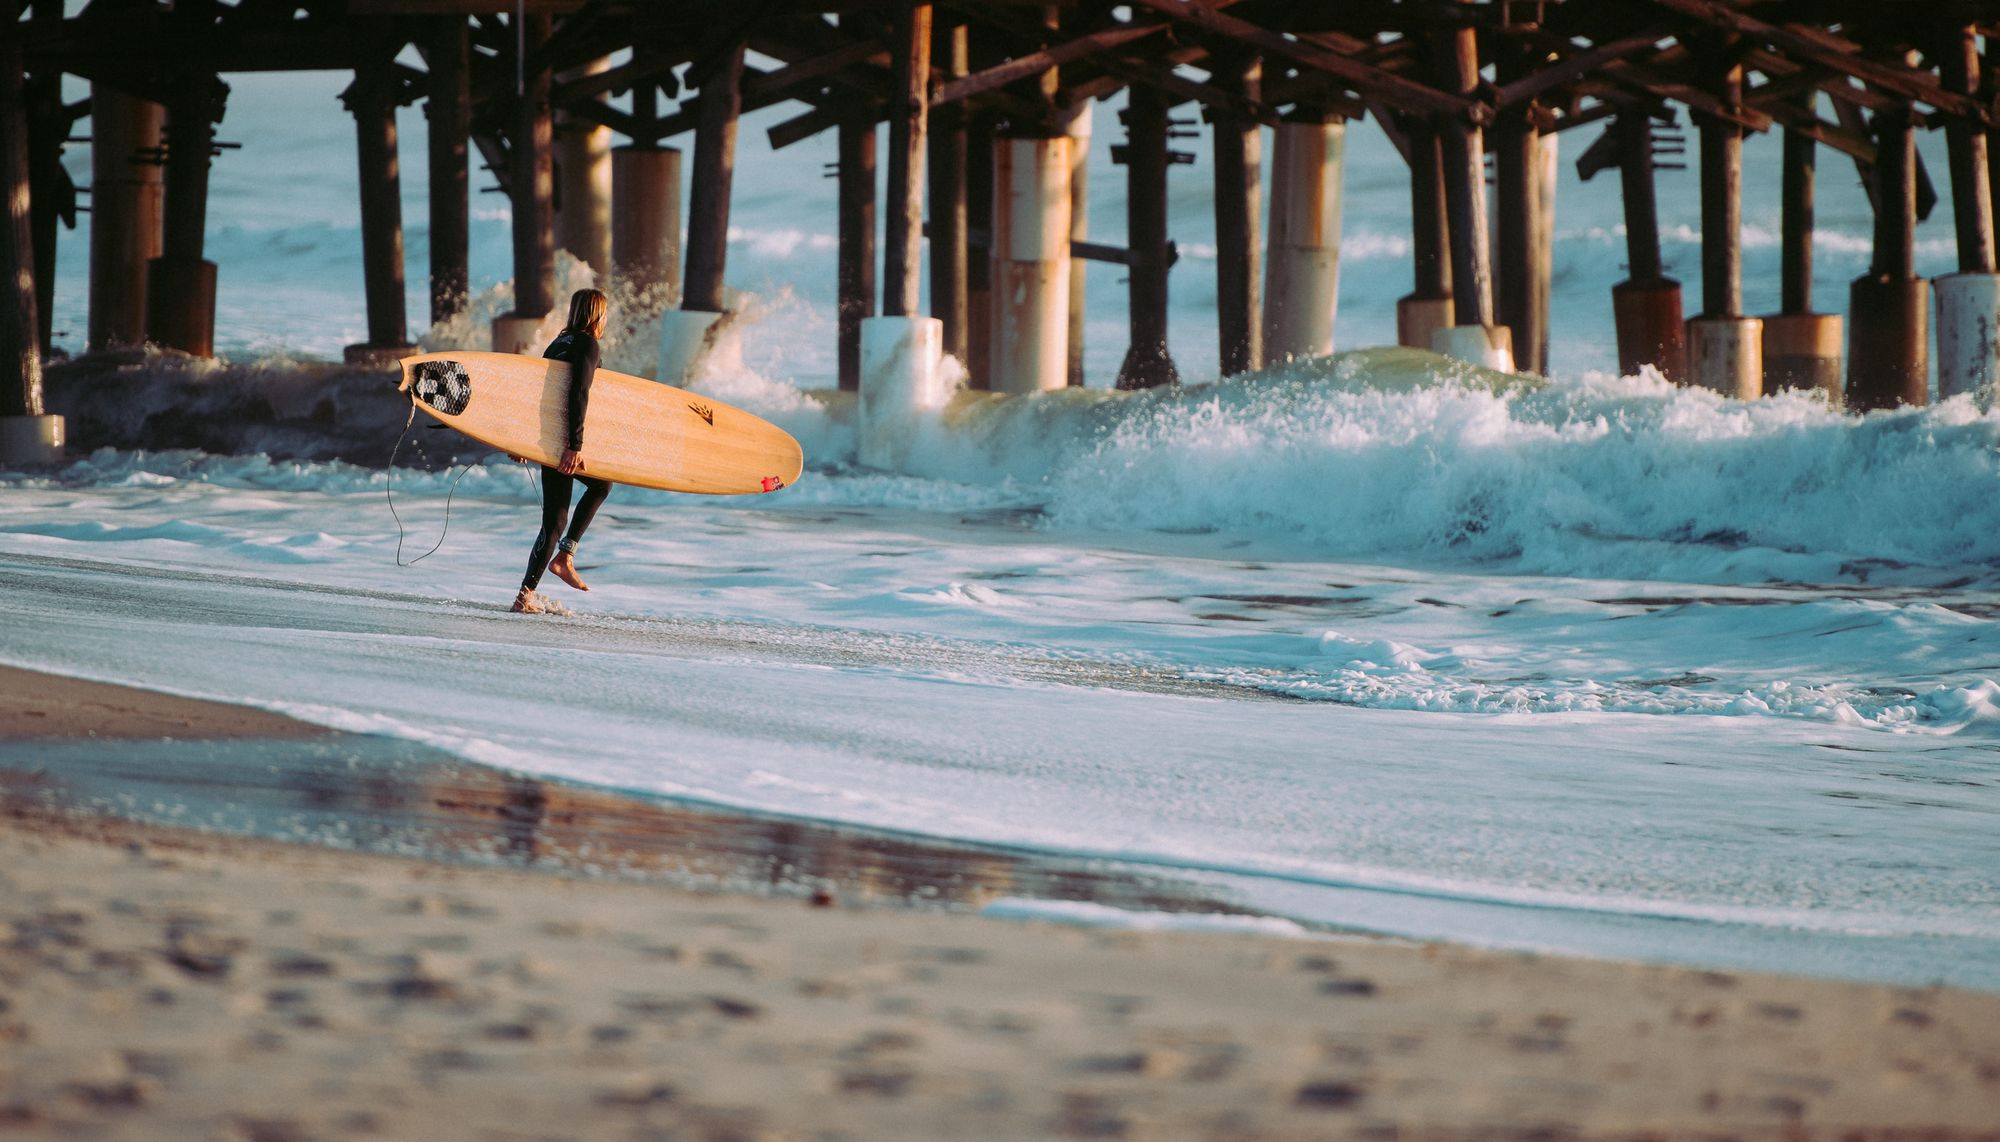 Hitting the waves surfer